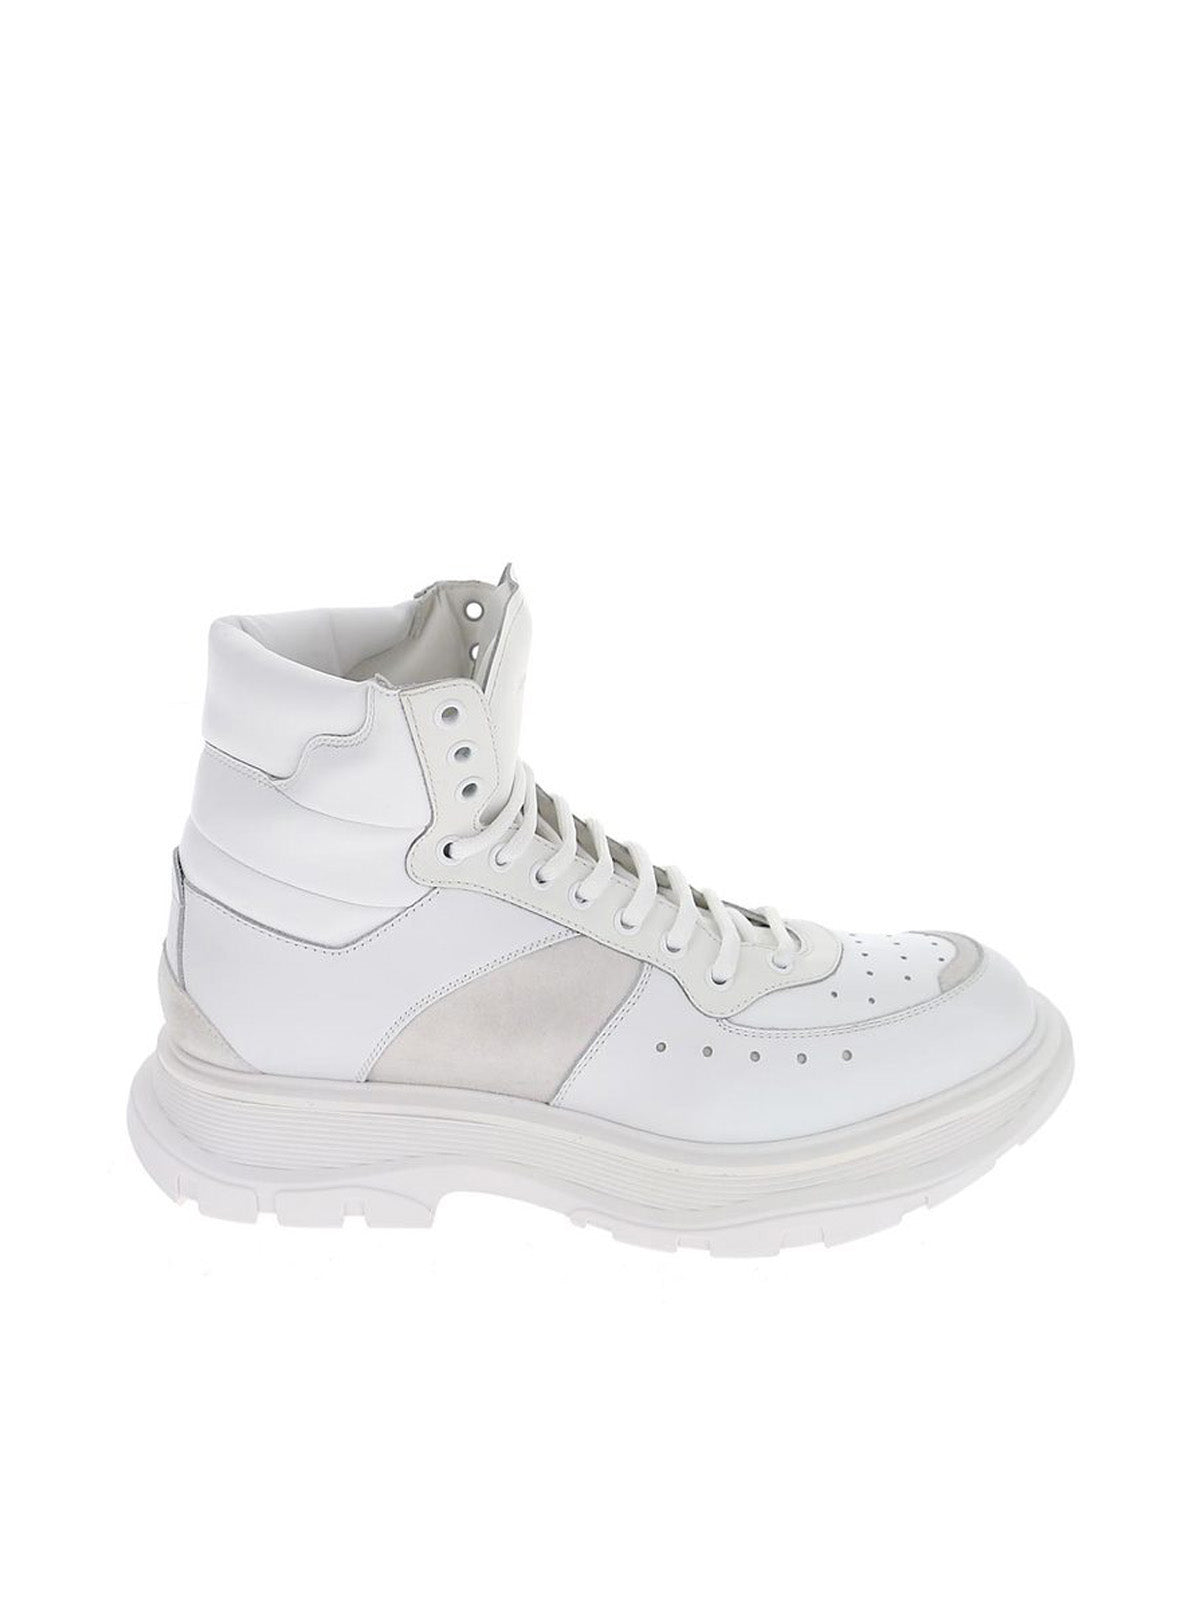 Lace-up high-top sneakers